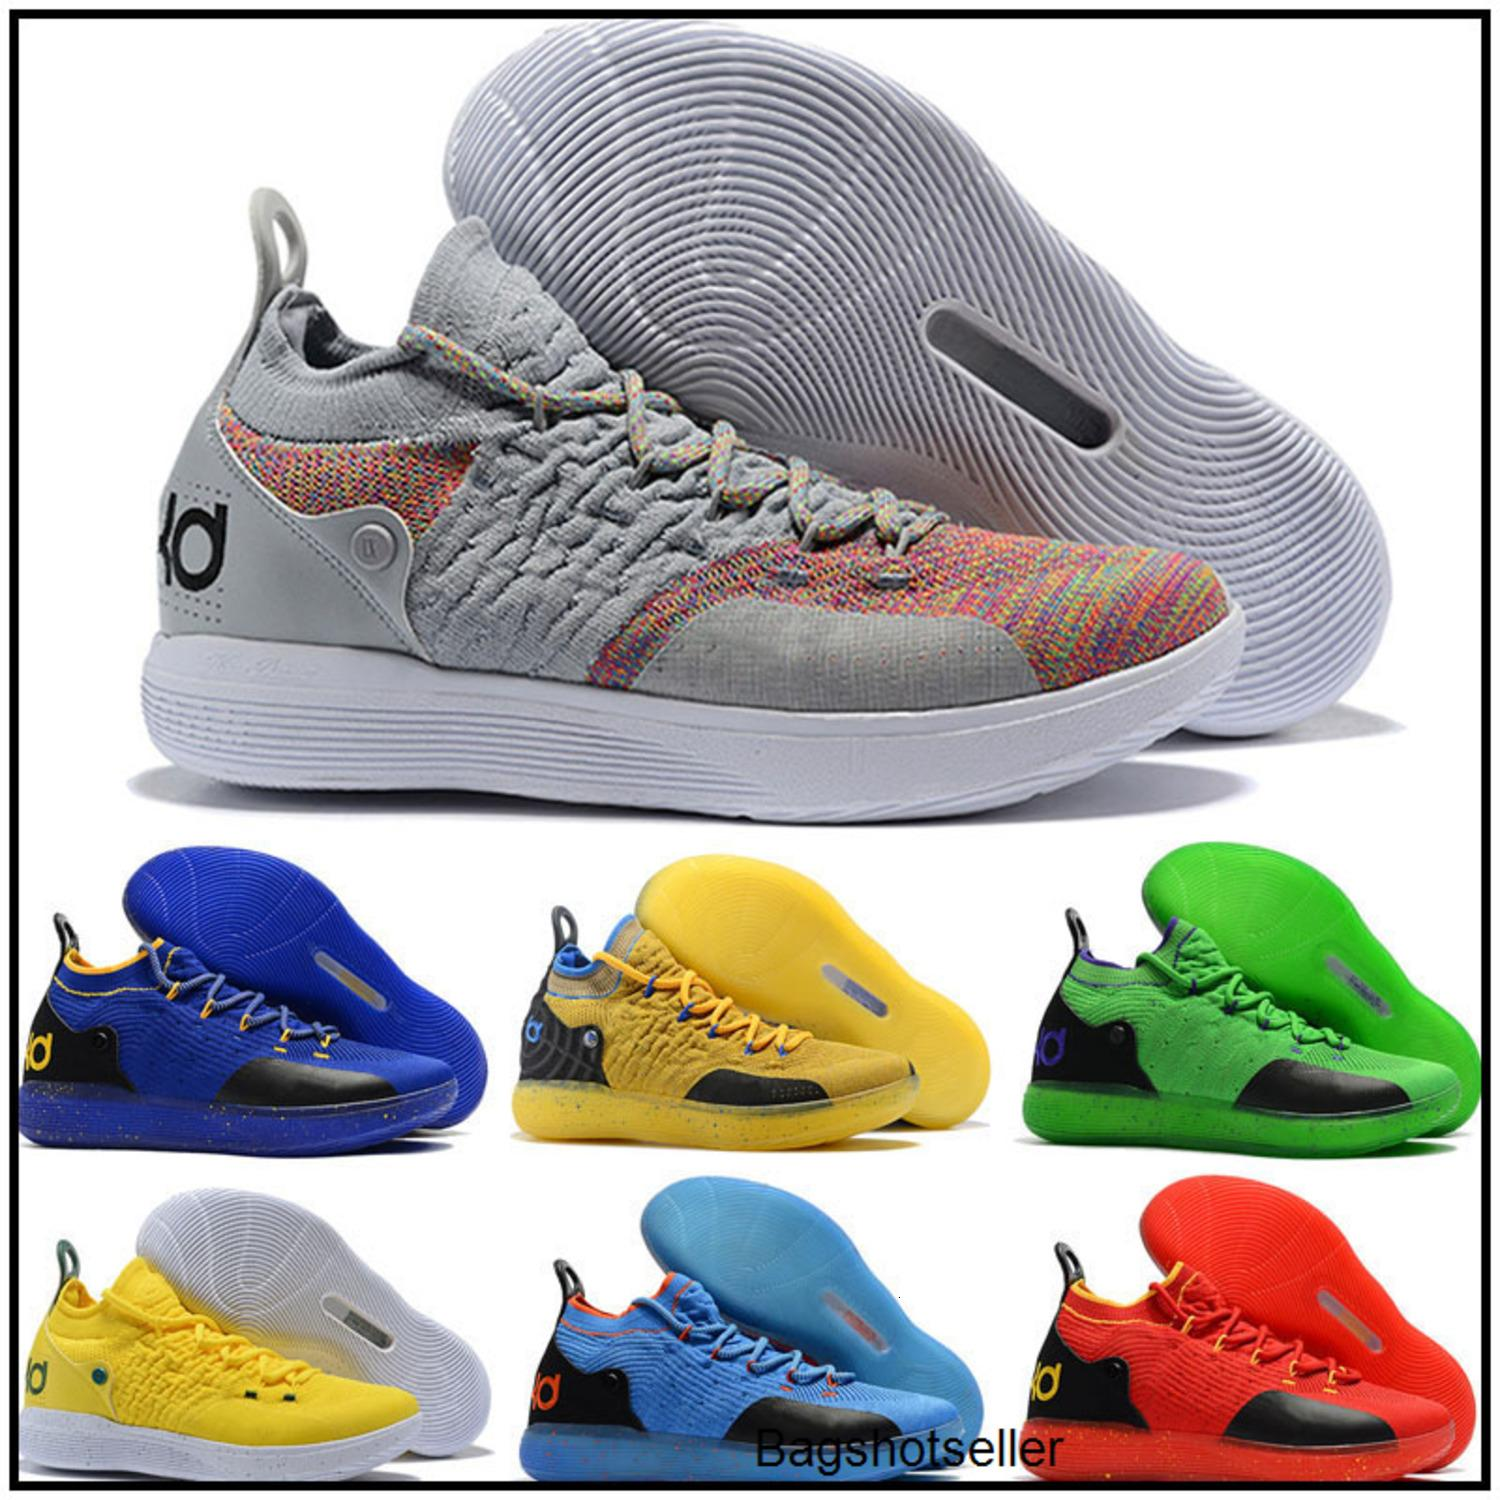 2020 KD 11 Gold Splatter KD Paranoid Twilight Pulse Cool Grey Mens Kids Basketball Shoes Zoom Kevin Durant 11 Sport Shoes Sneakers